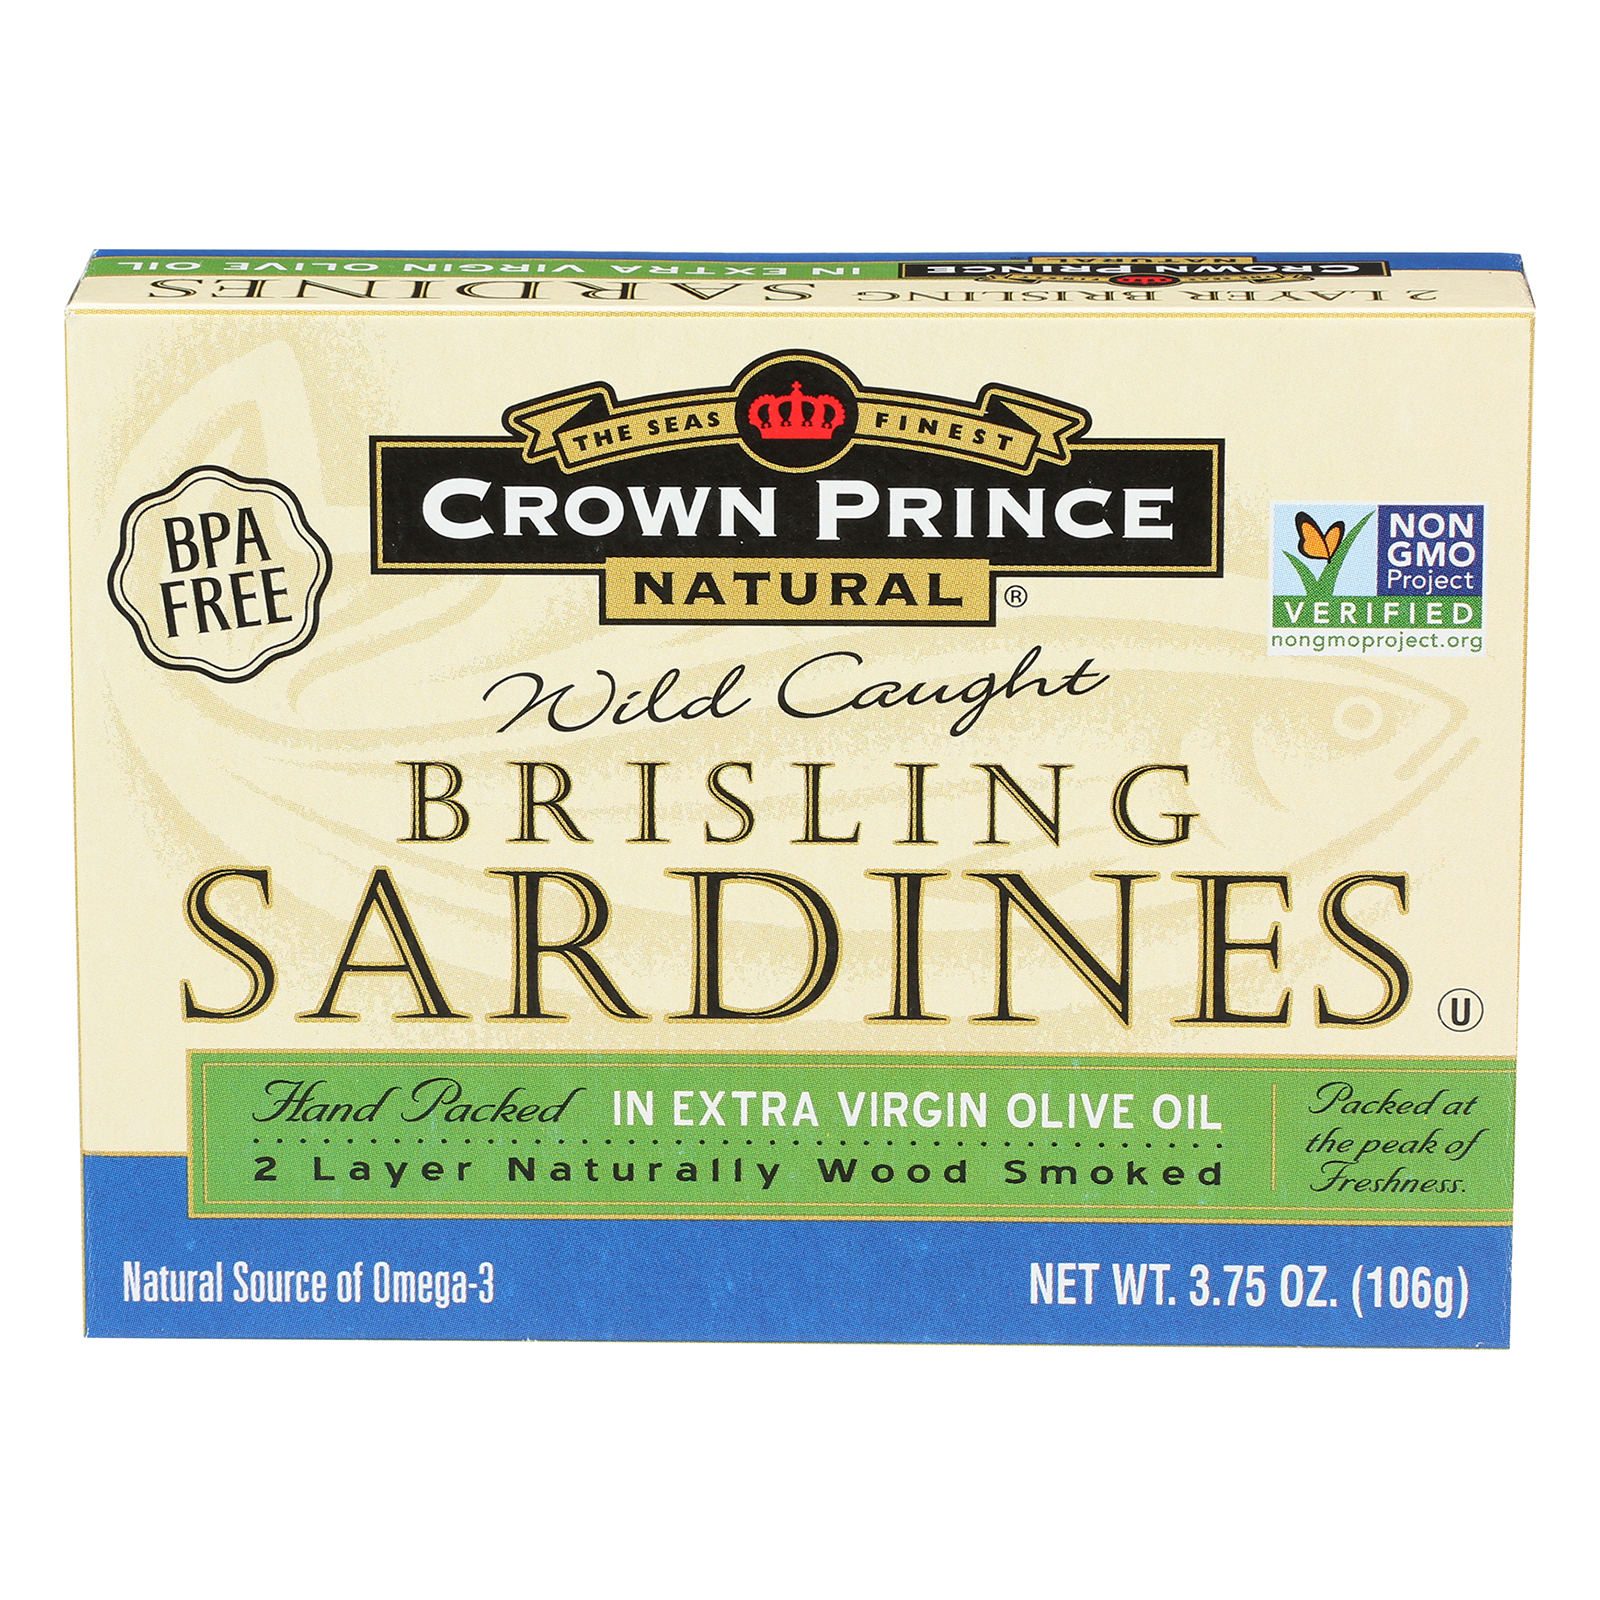 Crown Prince Brisling Sardines In Extra Virgin Olive Oil - Case of 12 - 3.75 oz.